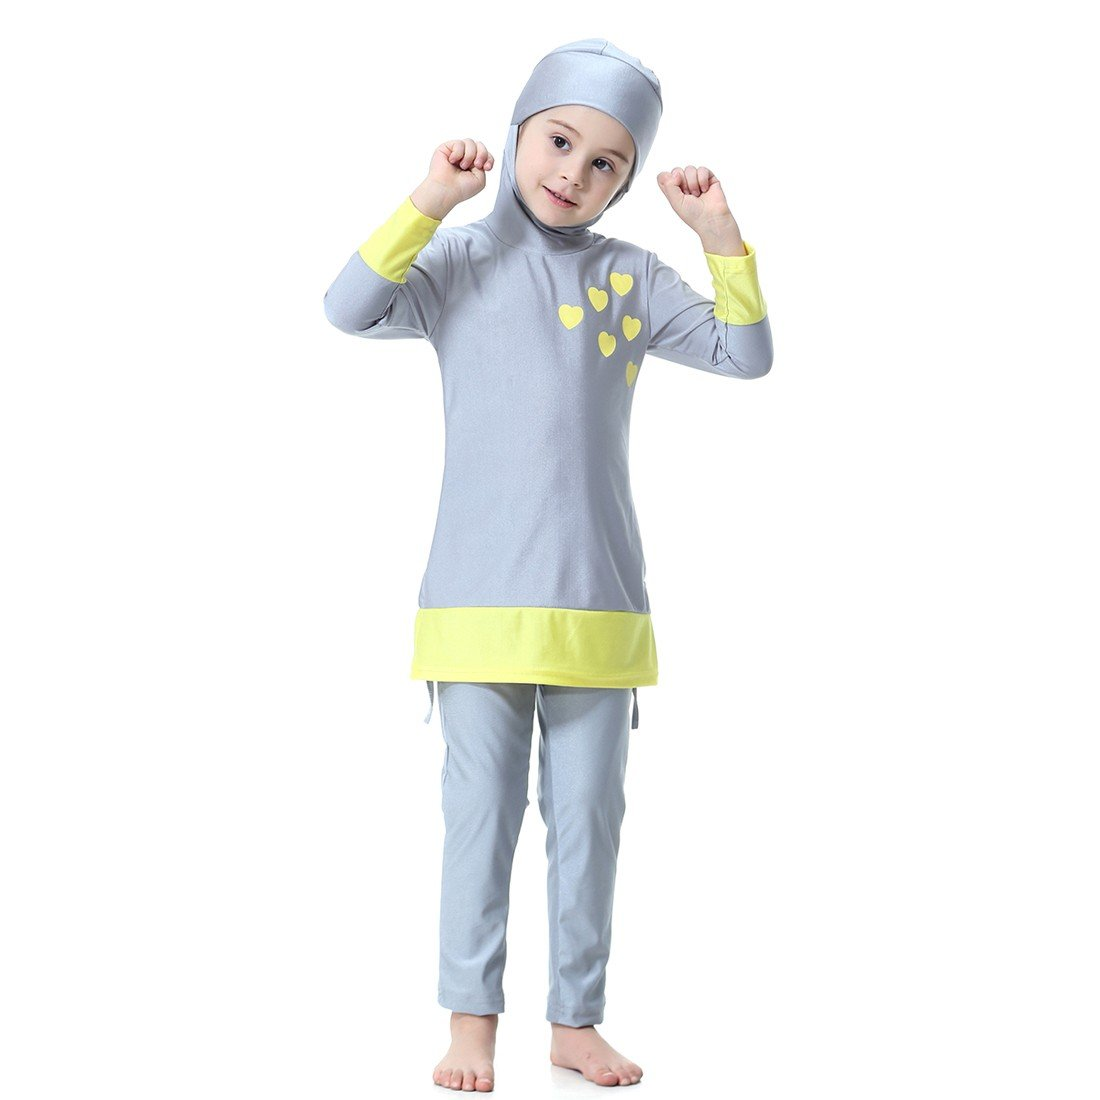 Paixpays Two Pieces Muslim Swimwear for Kids Islamic Swimsuit for Little Girl E9099S0076